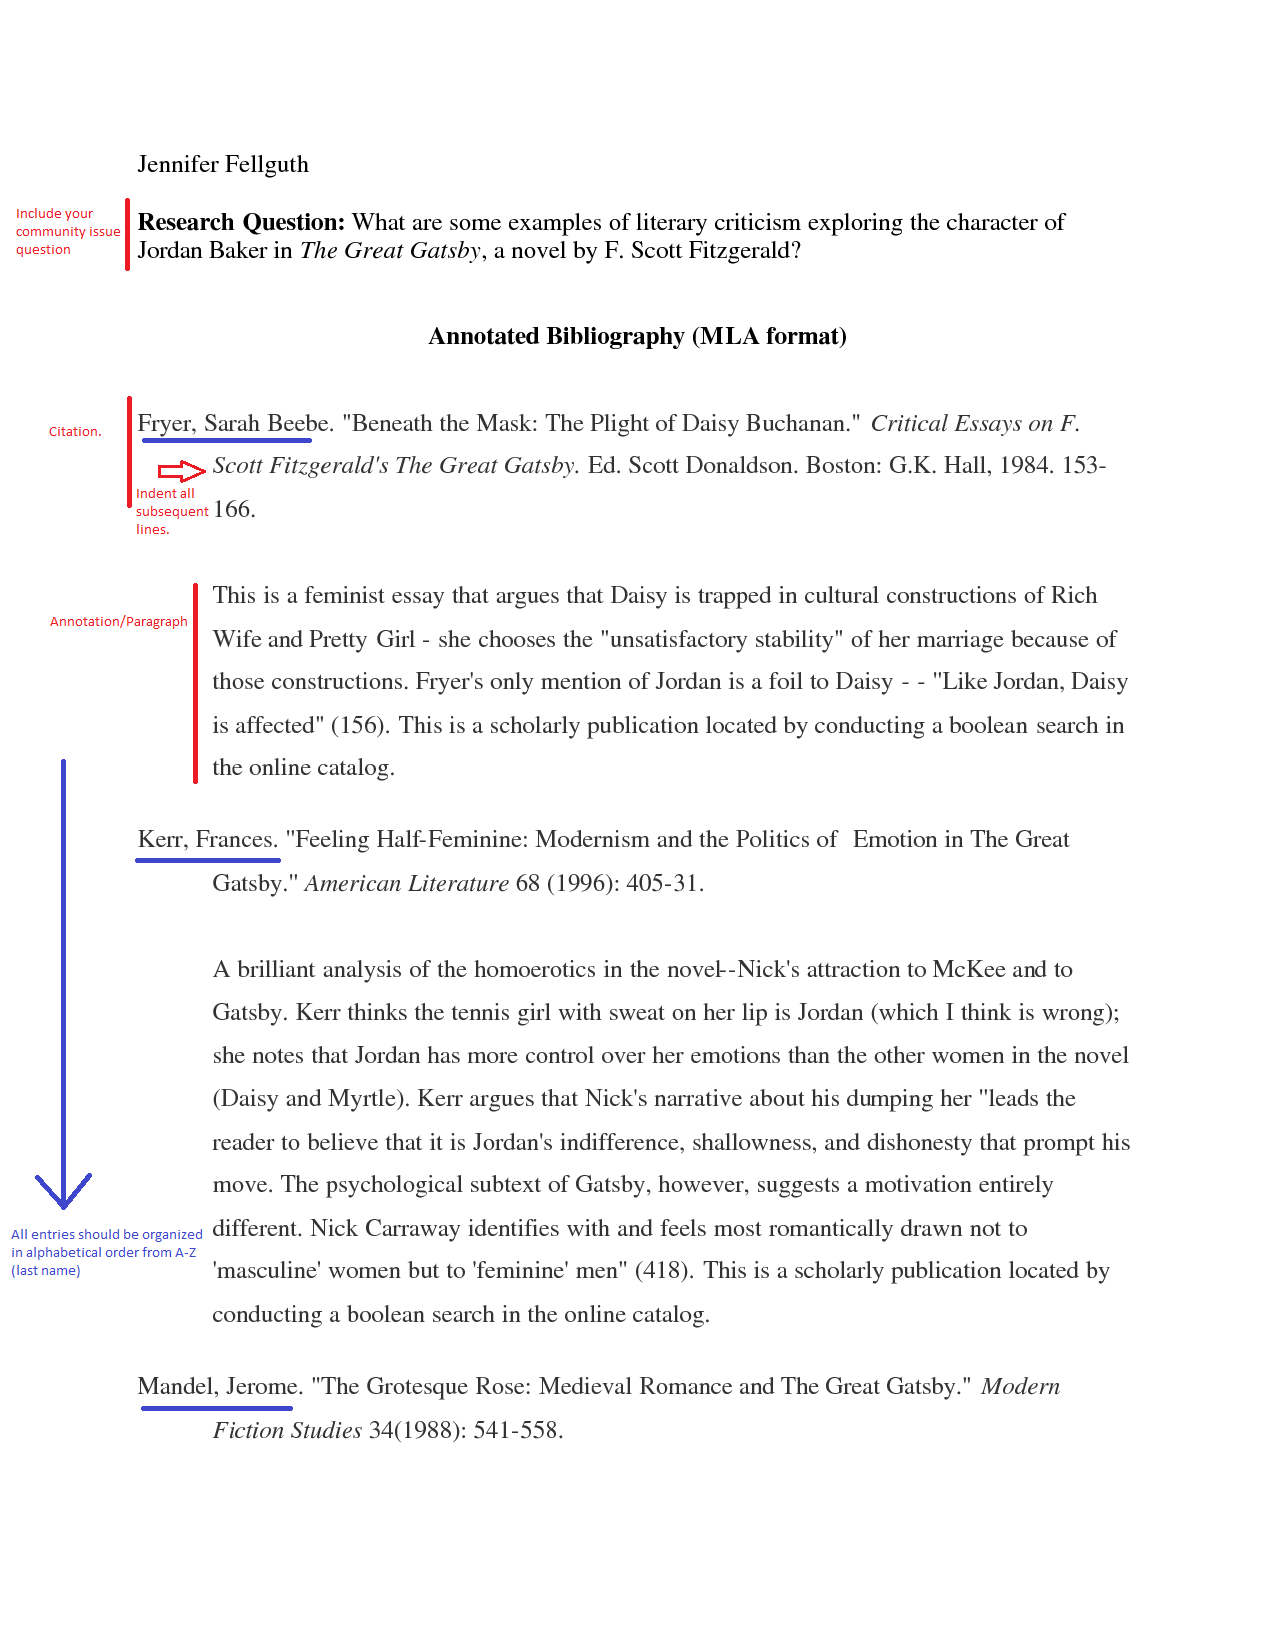 008 Essay Example Mla Citation For How To Cite Images In Format Did You Know Papernotatedbibsampleanno Parenthetical Citing Unusual An A Paper Research Papers 8 Full